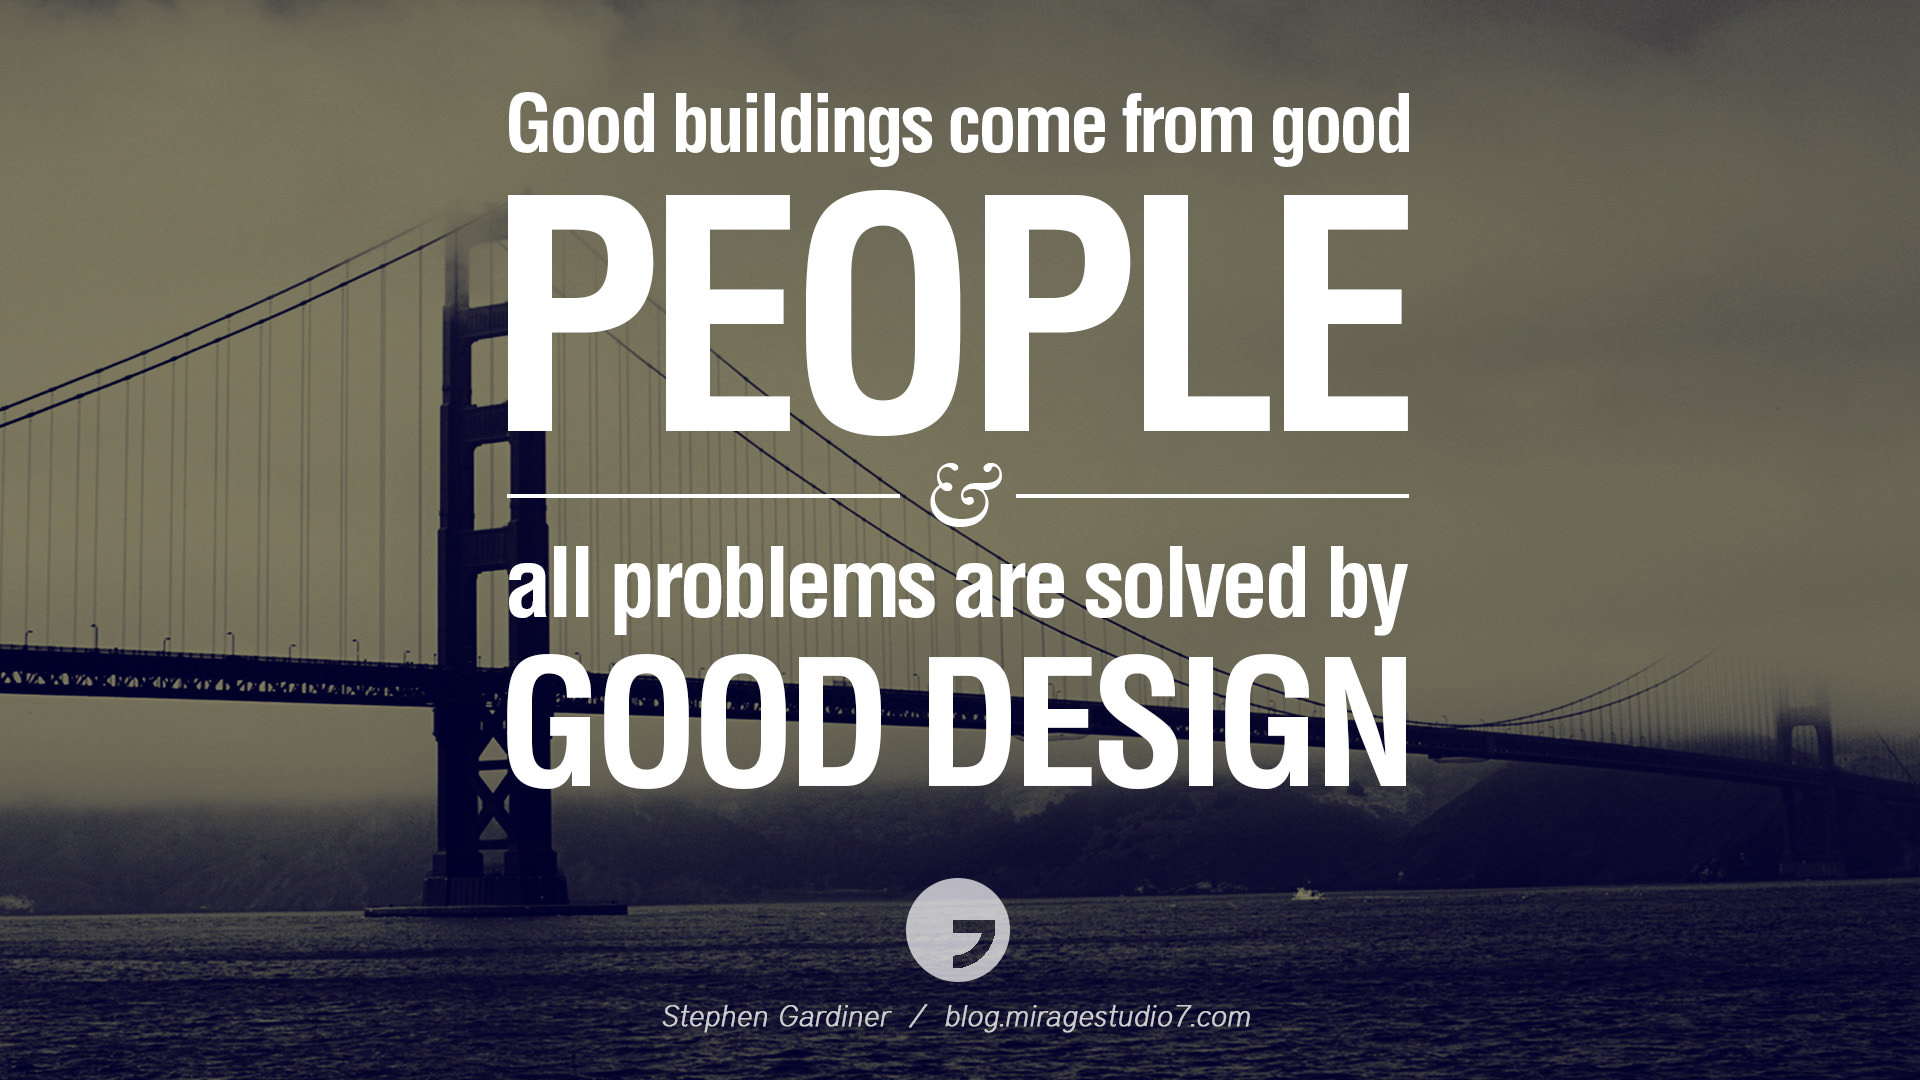 quotes architecture architect architects famous inspirational interior buildings designers landscape solved problems gardiner stephen come architectural building inspiration elie mais